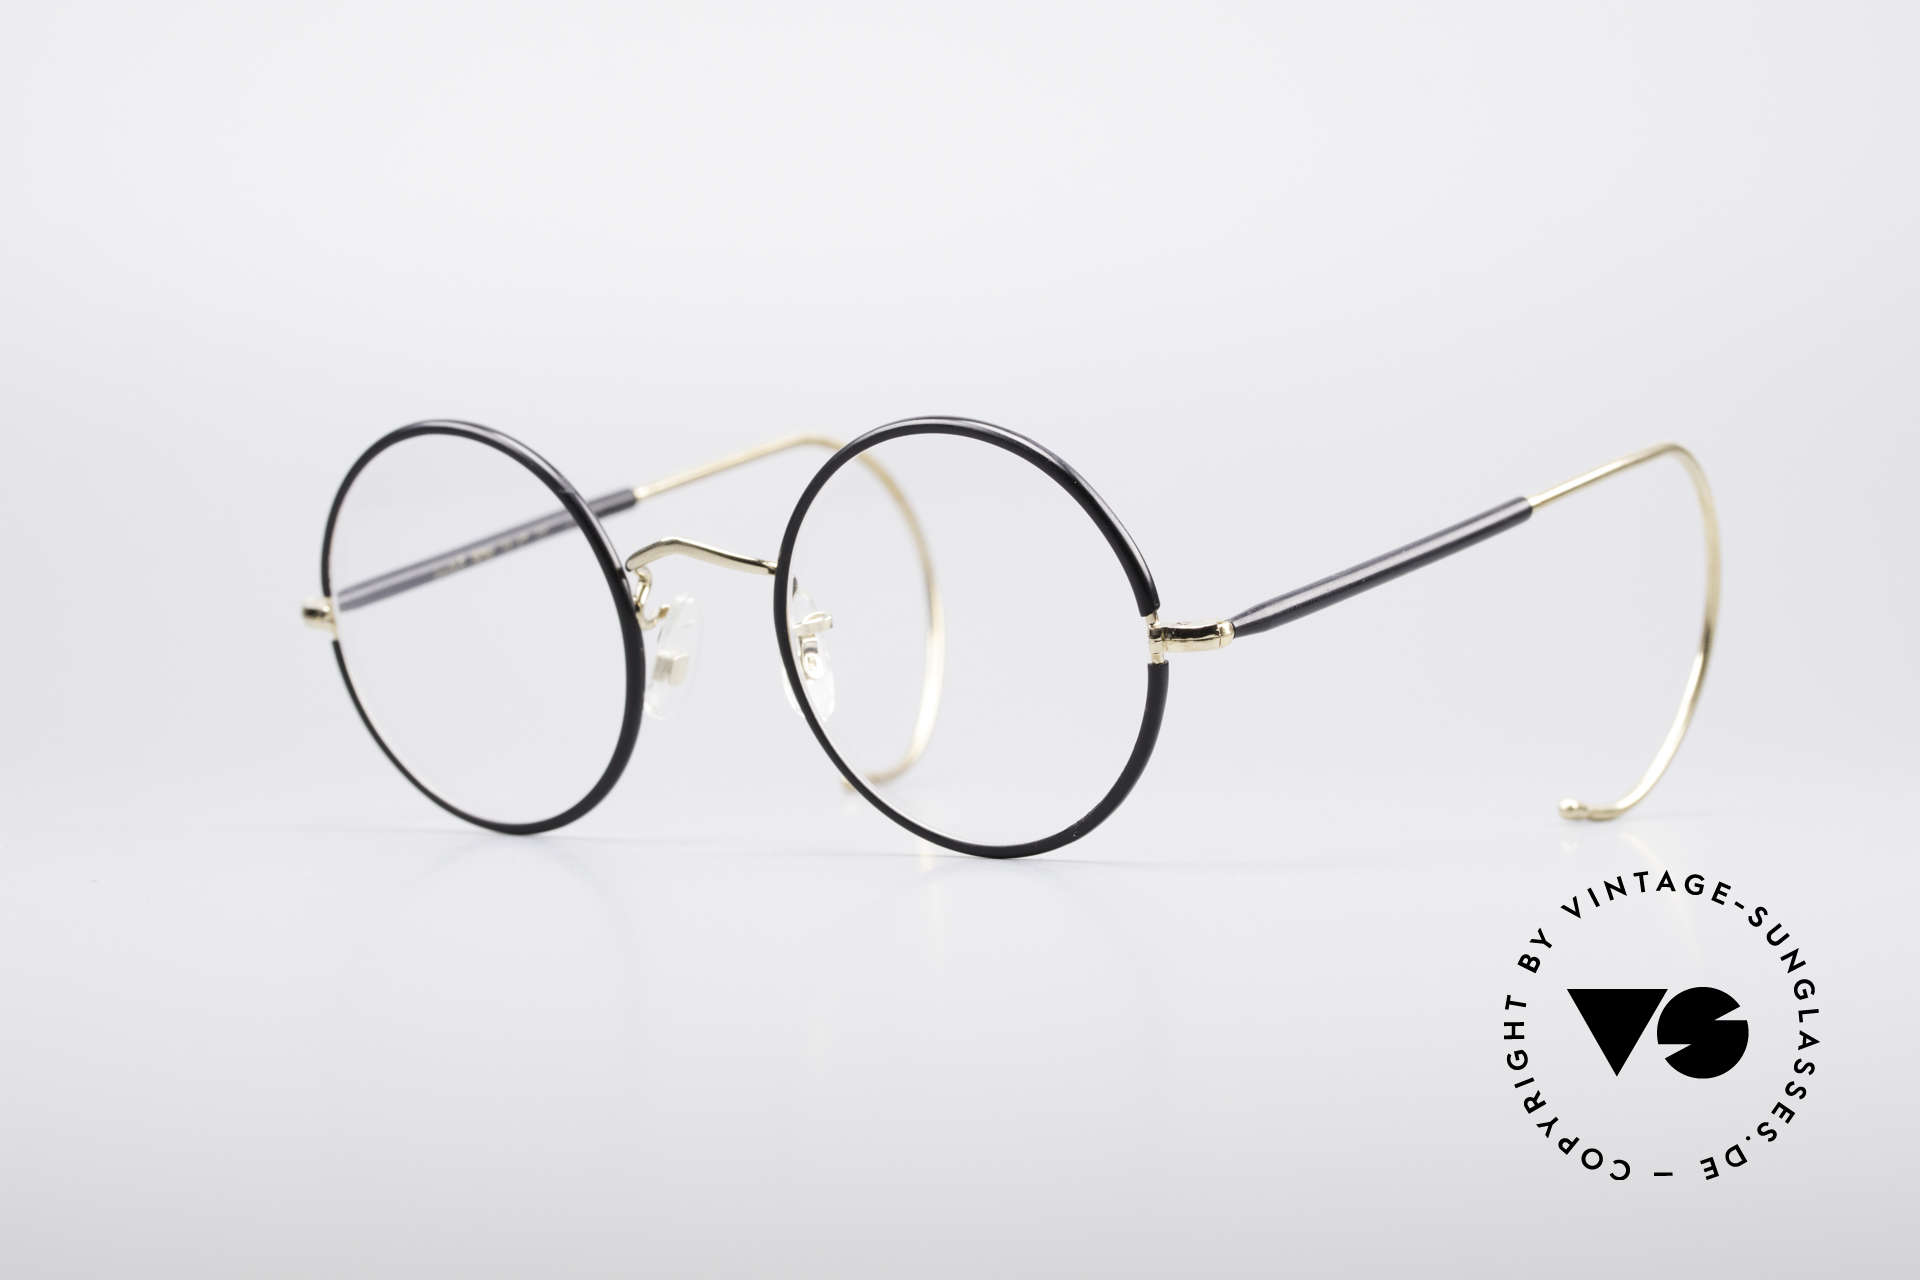 Savile Row Round 47/22 Harry Potter Glasses, 'The Savile Row Collection' by ALGHA, UK OPTICAL, Made for Men